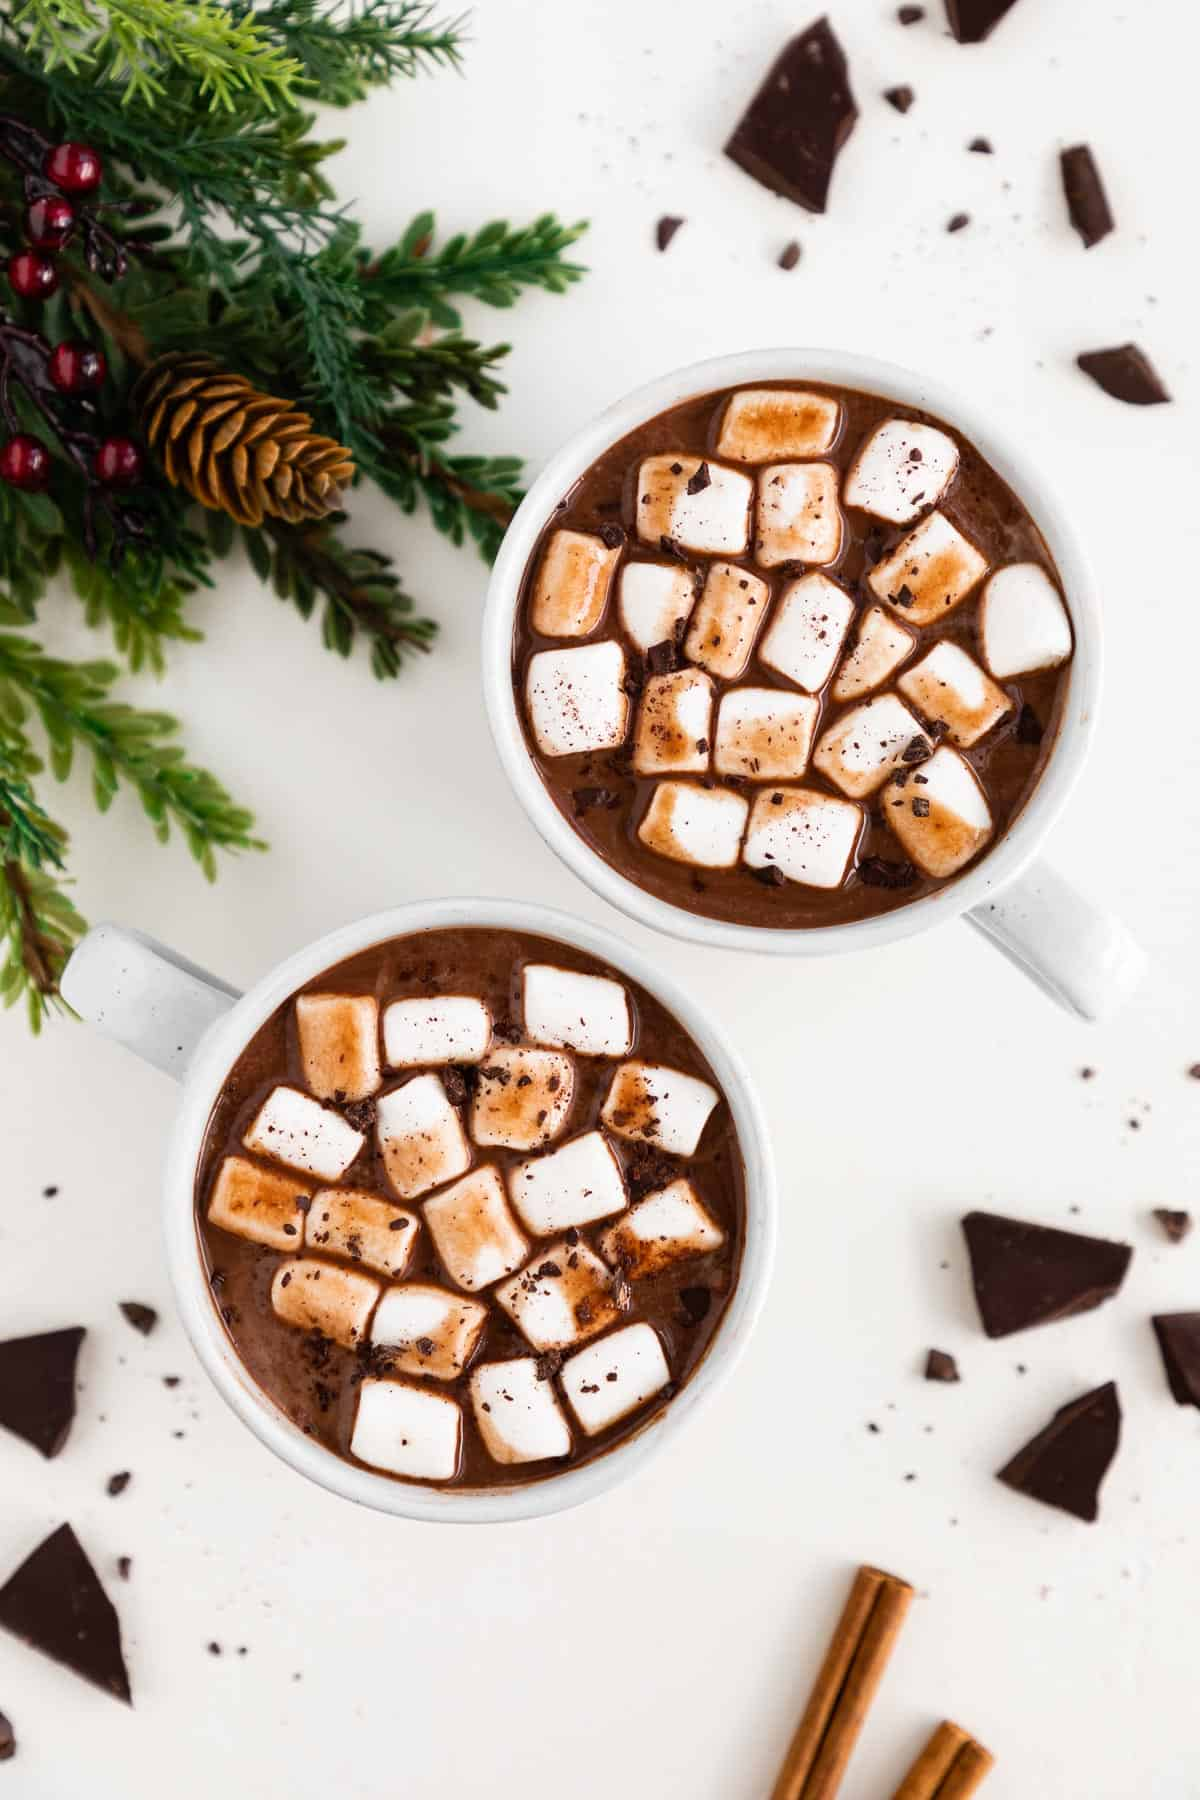 two white mugs filled with vegan hot chocolate, mini marshmallows, and chocolate shavings, surrounded by pieces of dark chocolate